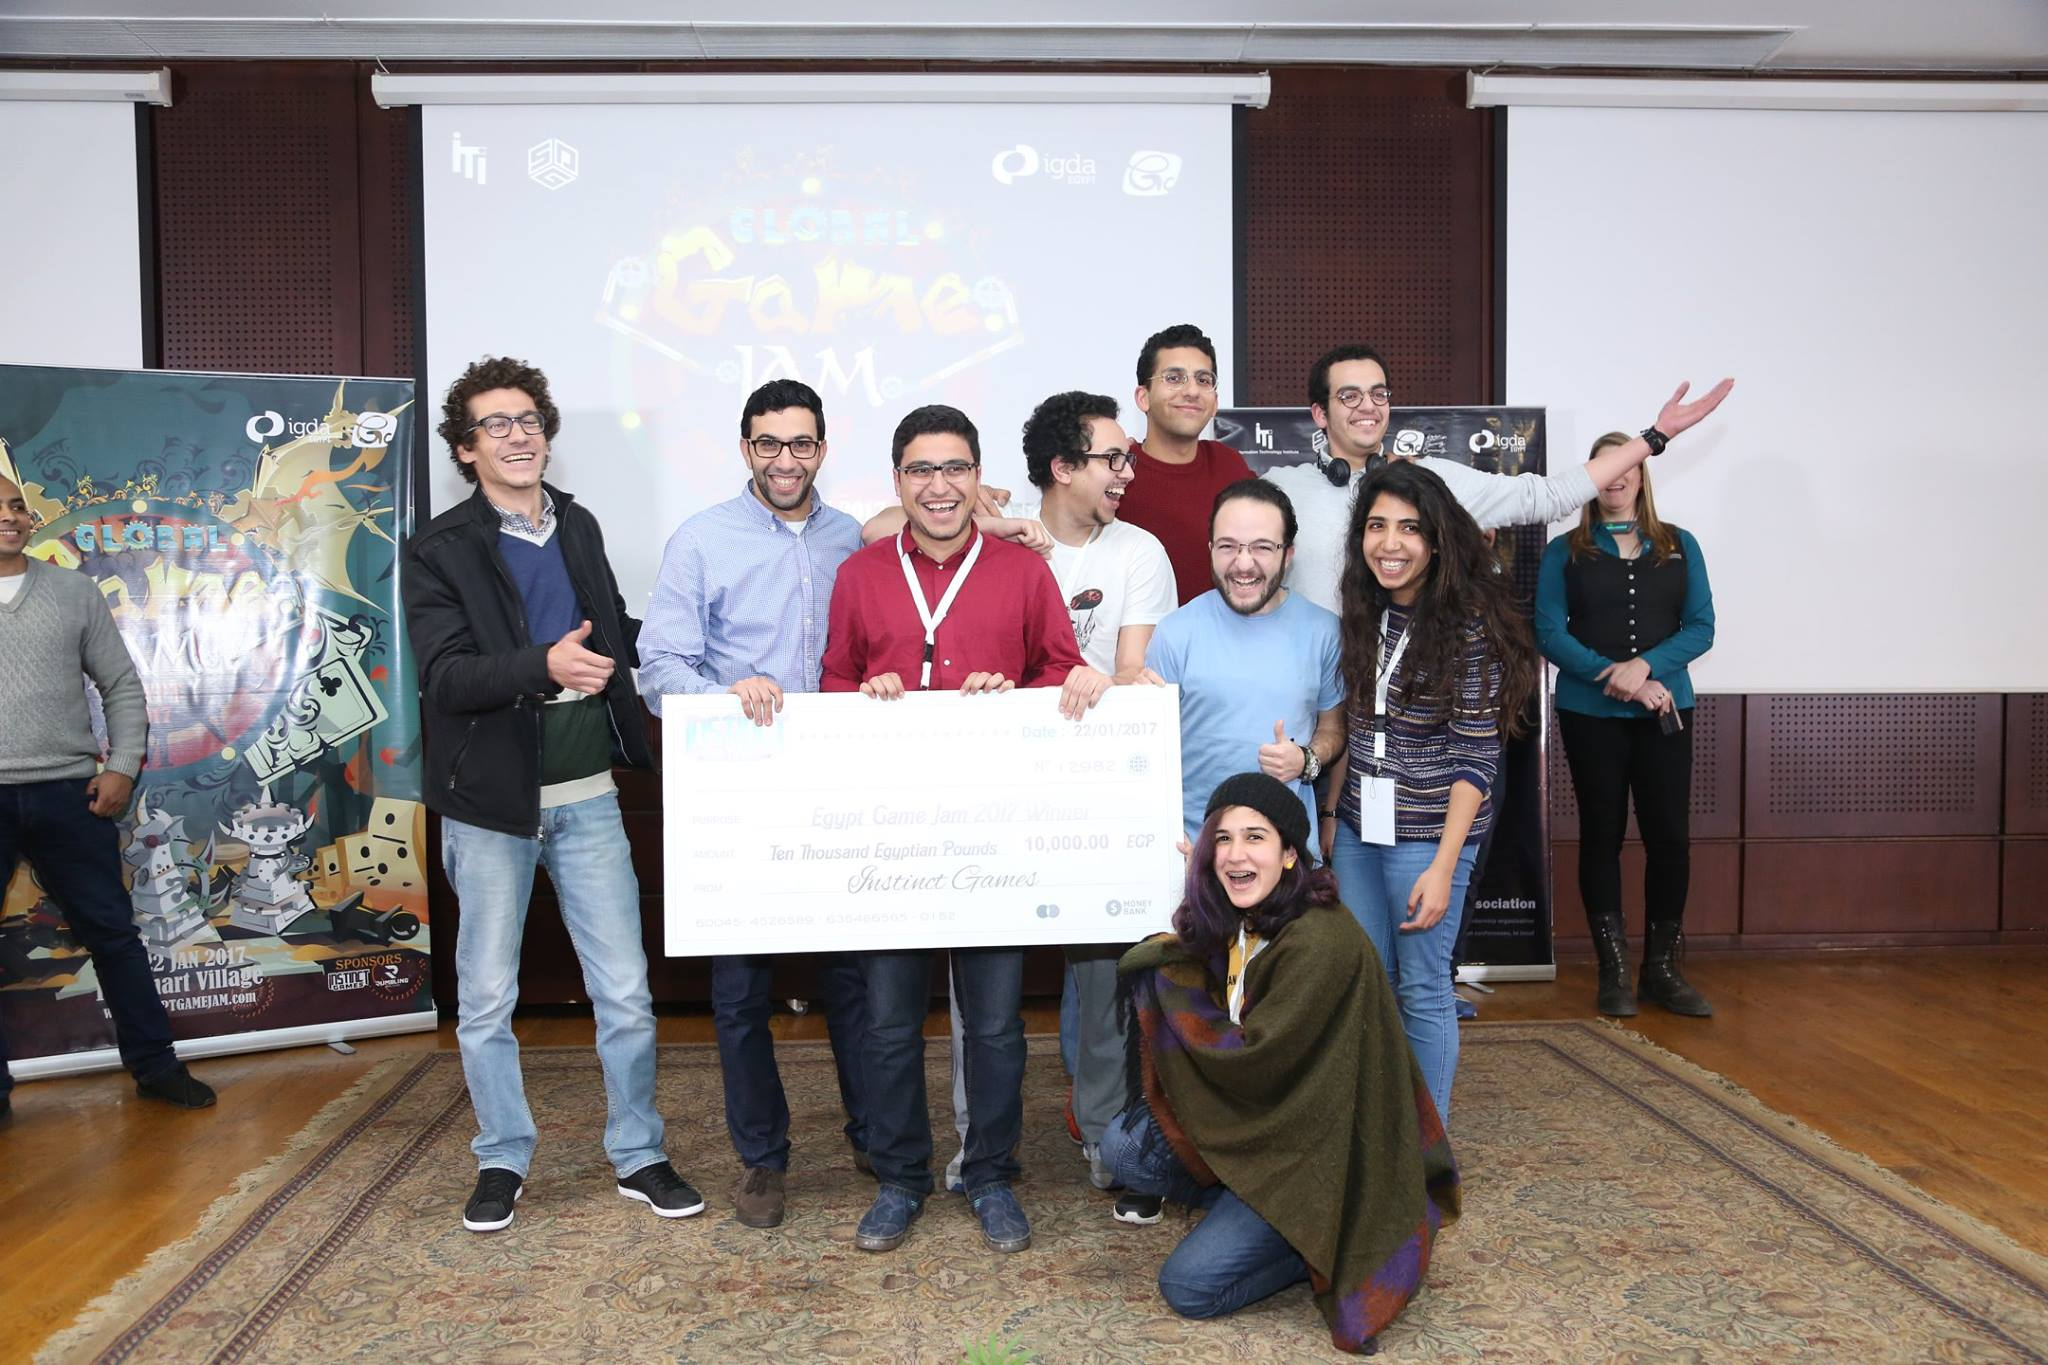 Null Team winning the 2017 Global Game Jam award